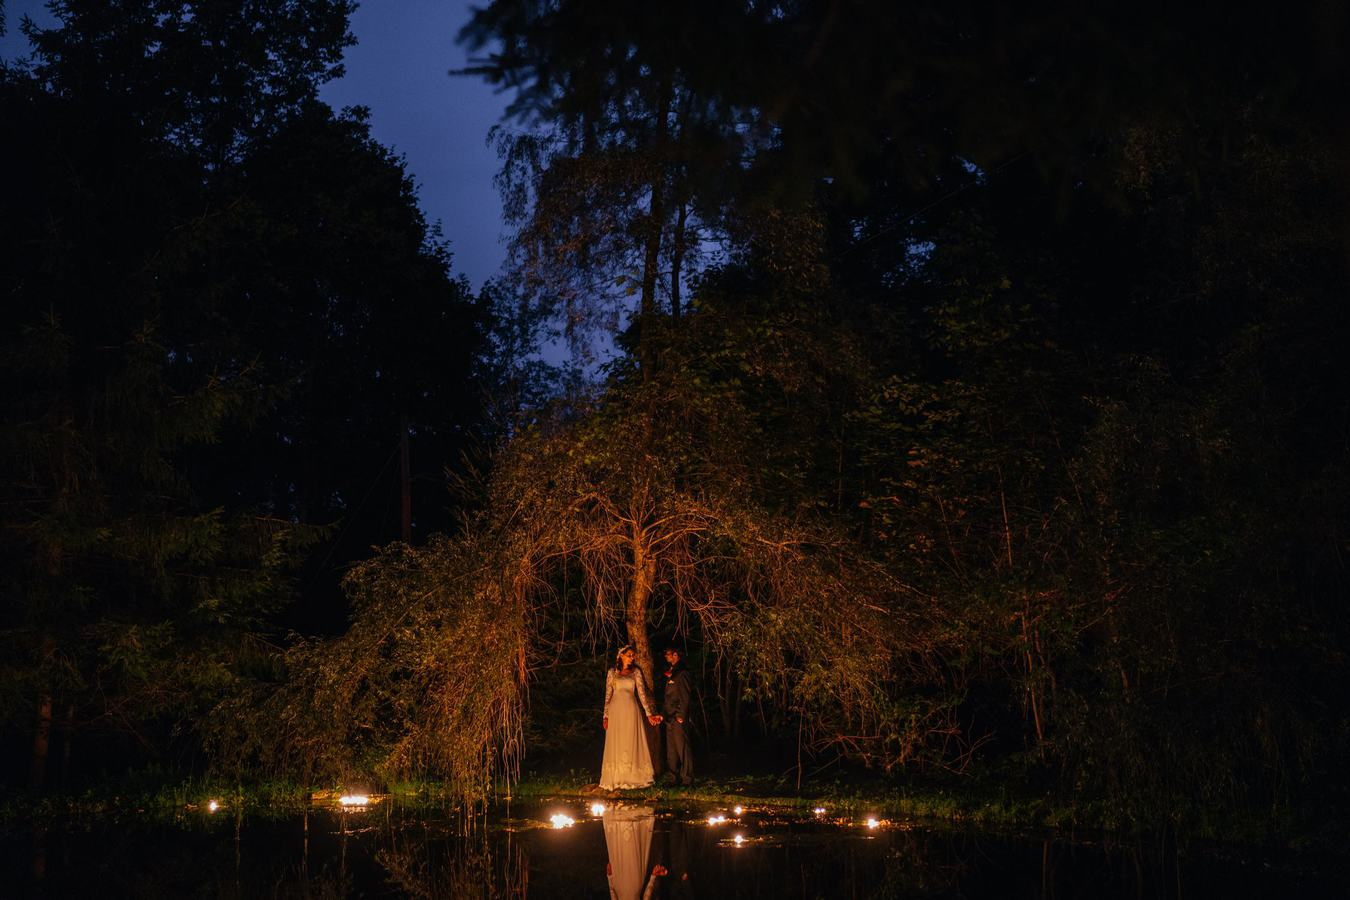 Bride and groom stand underneath tree by candle lit pond and hold hands at night at Catskill wedding venue.